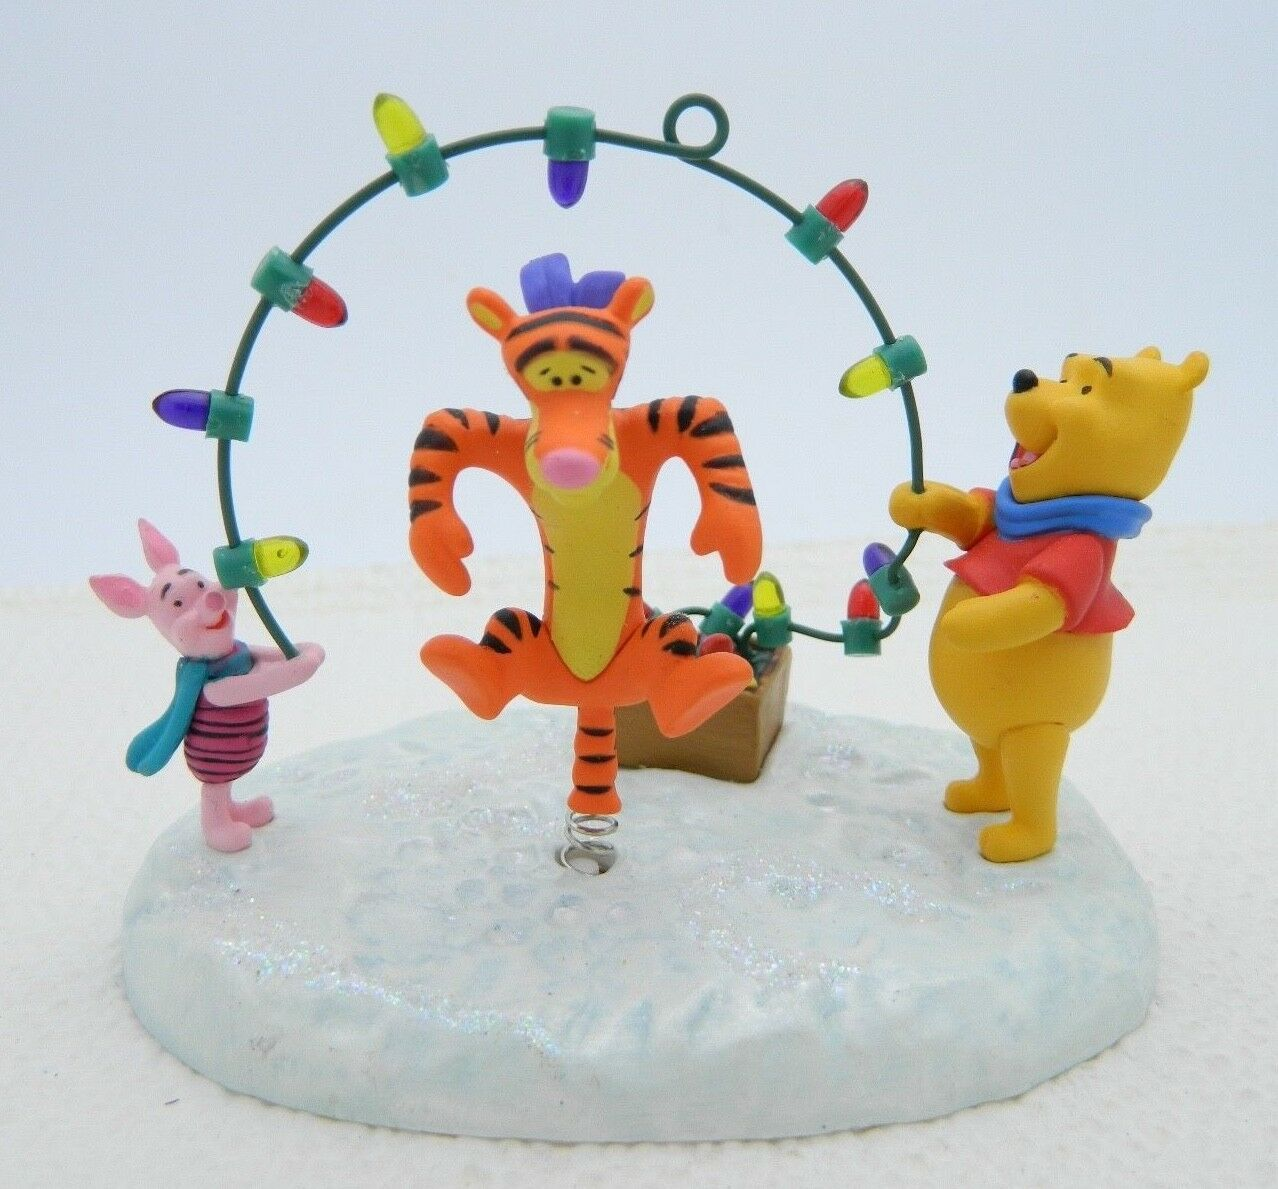 Primary image for Hallmark Ornament 2009 TIGGER'S BOUNCY HOLIDAY Winnie the Pooh Collection PIGLET